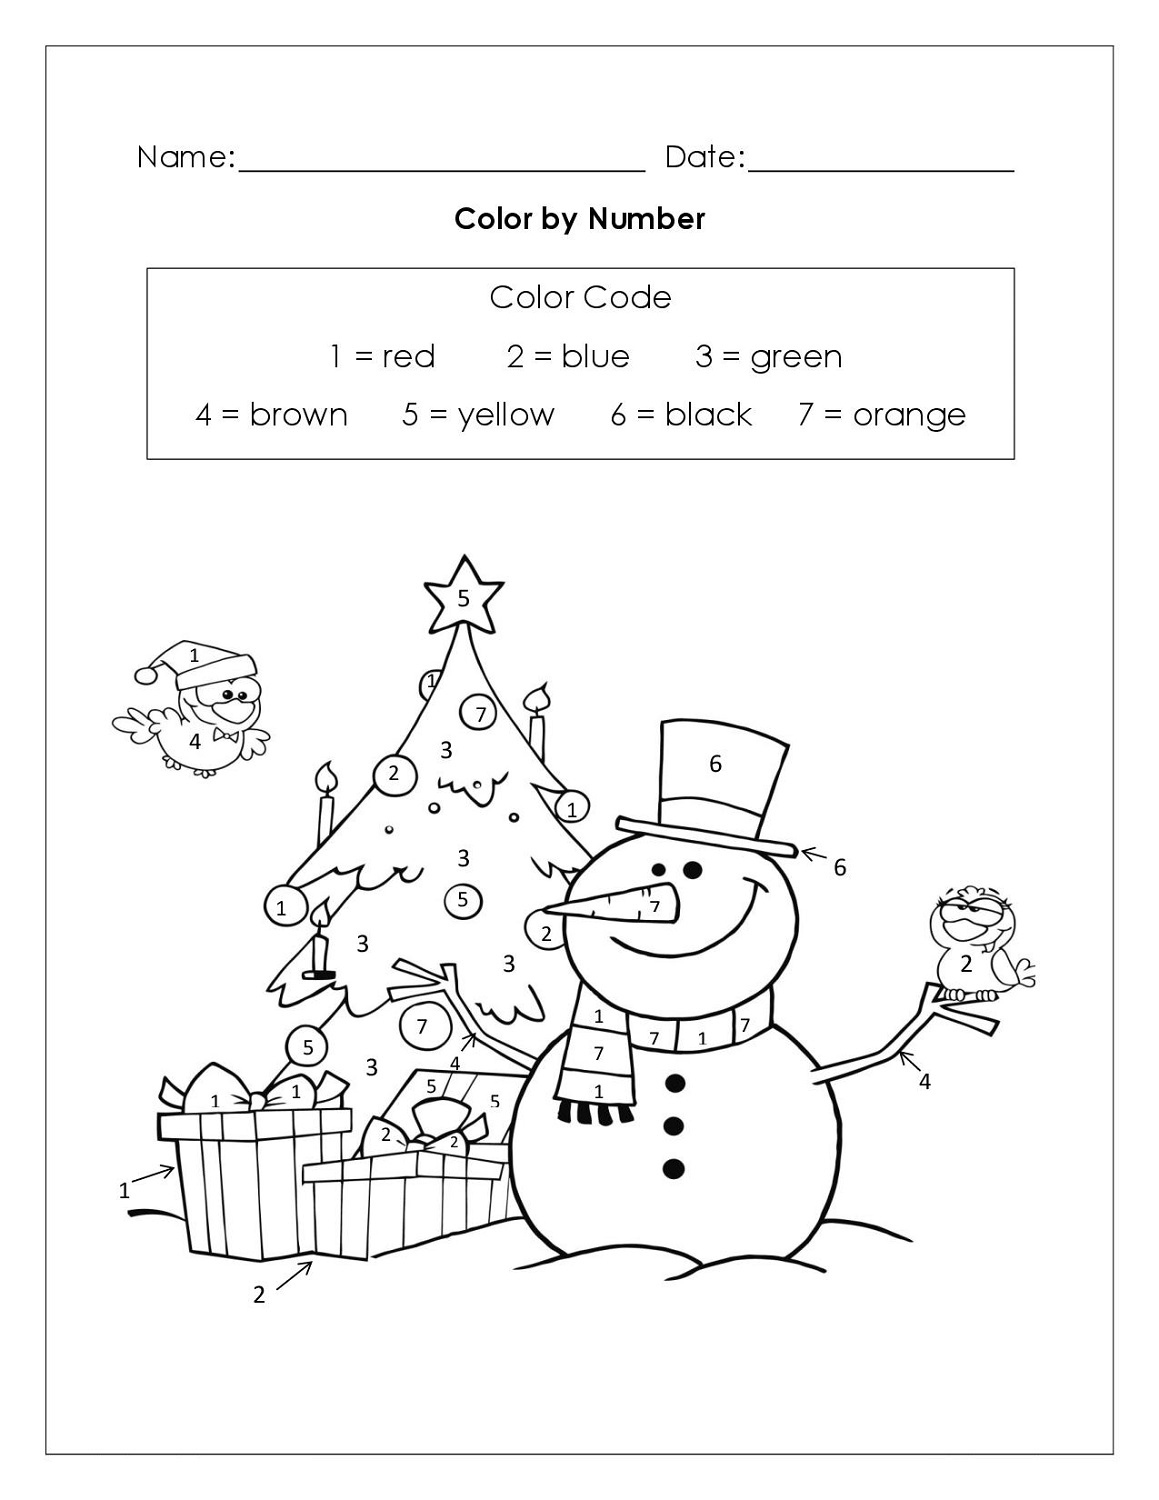 Printable Worksheets Good Manners Sketch Coloring Page